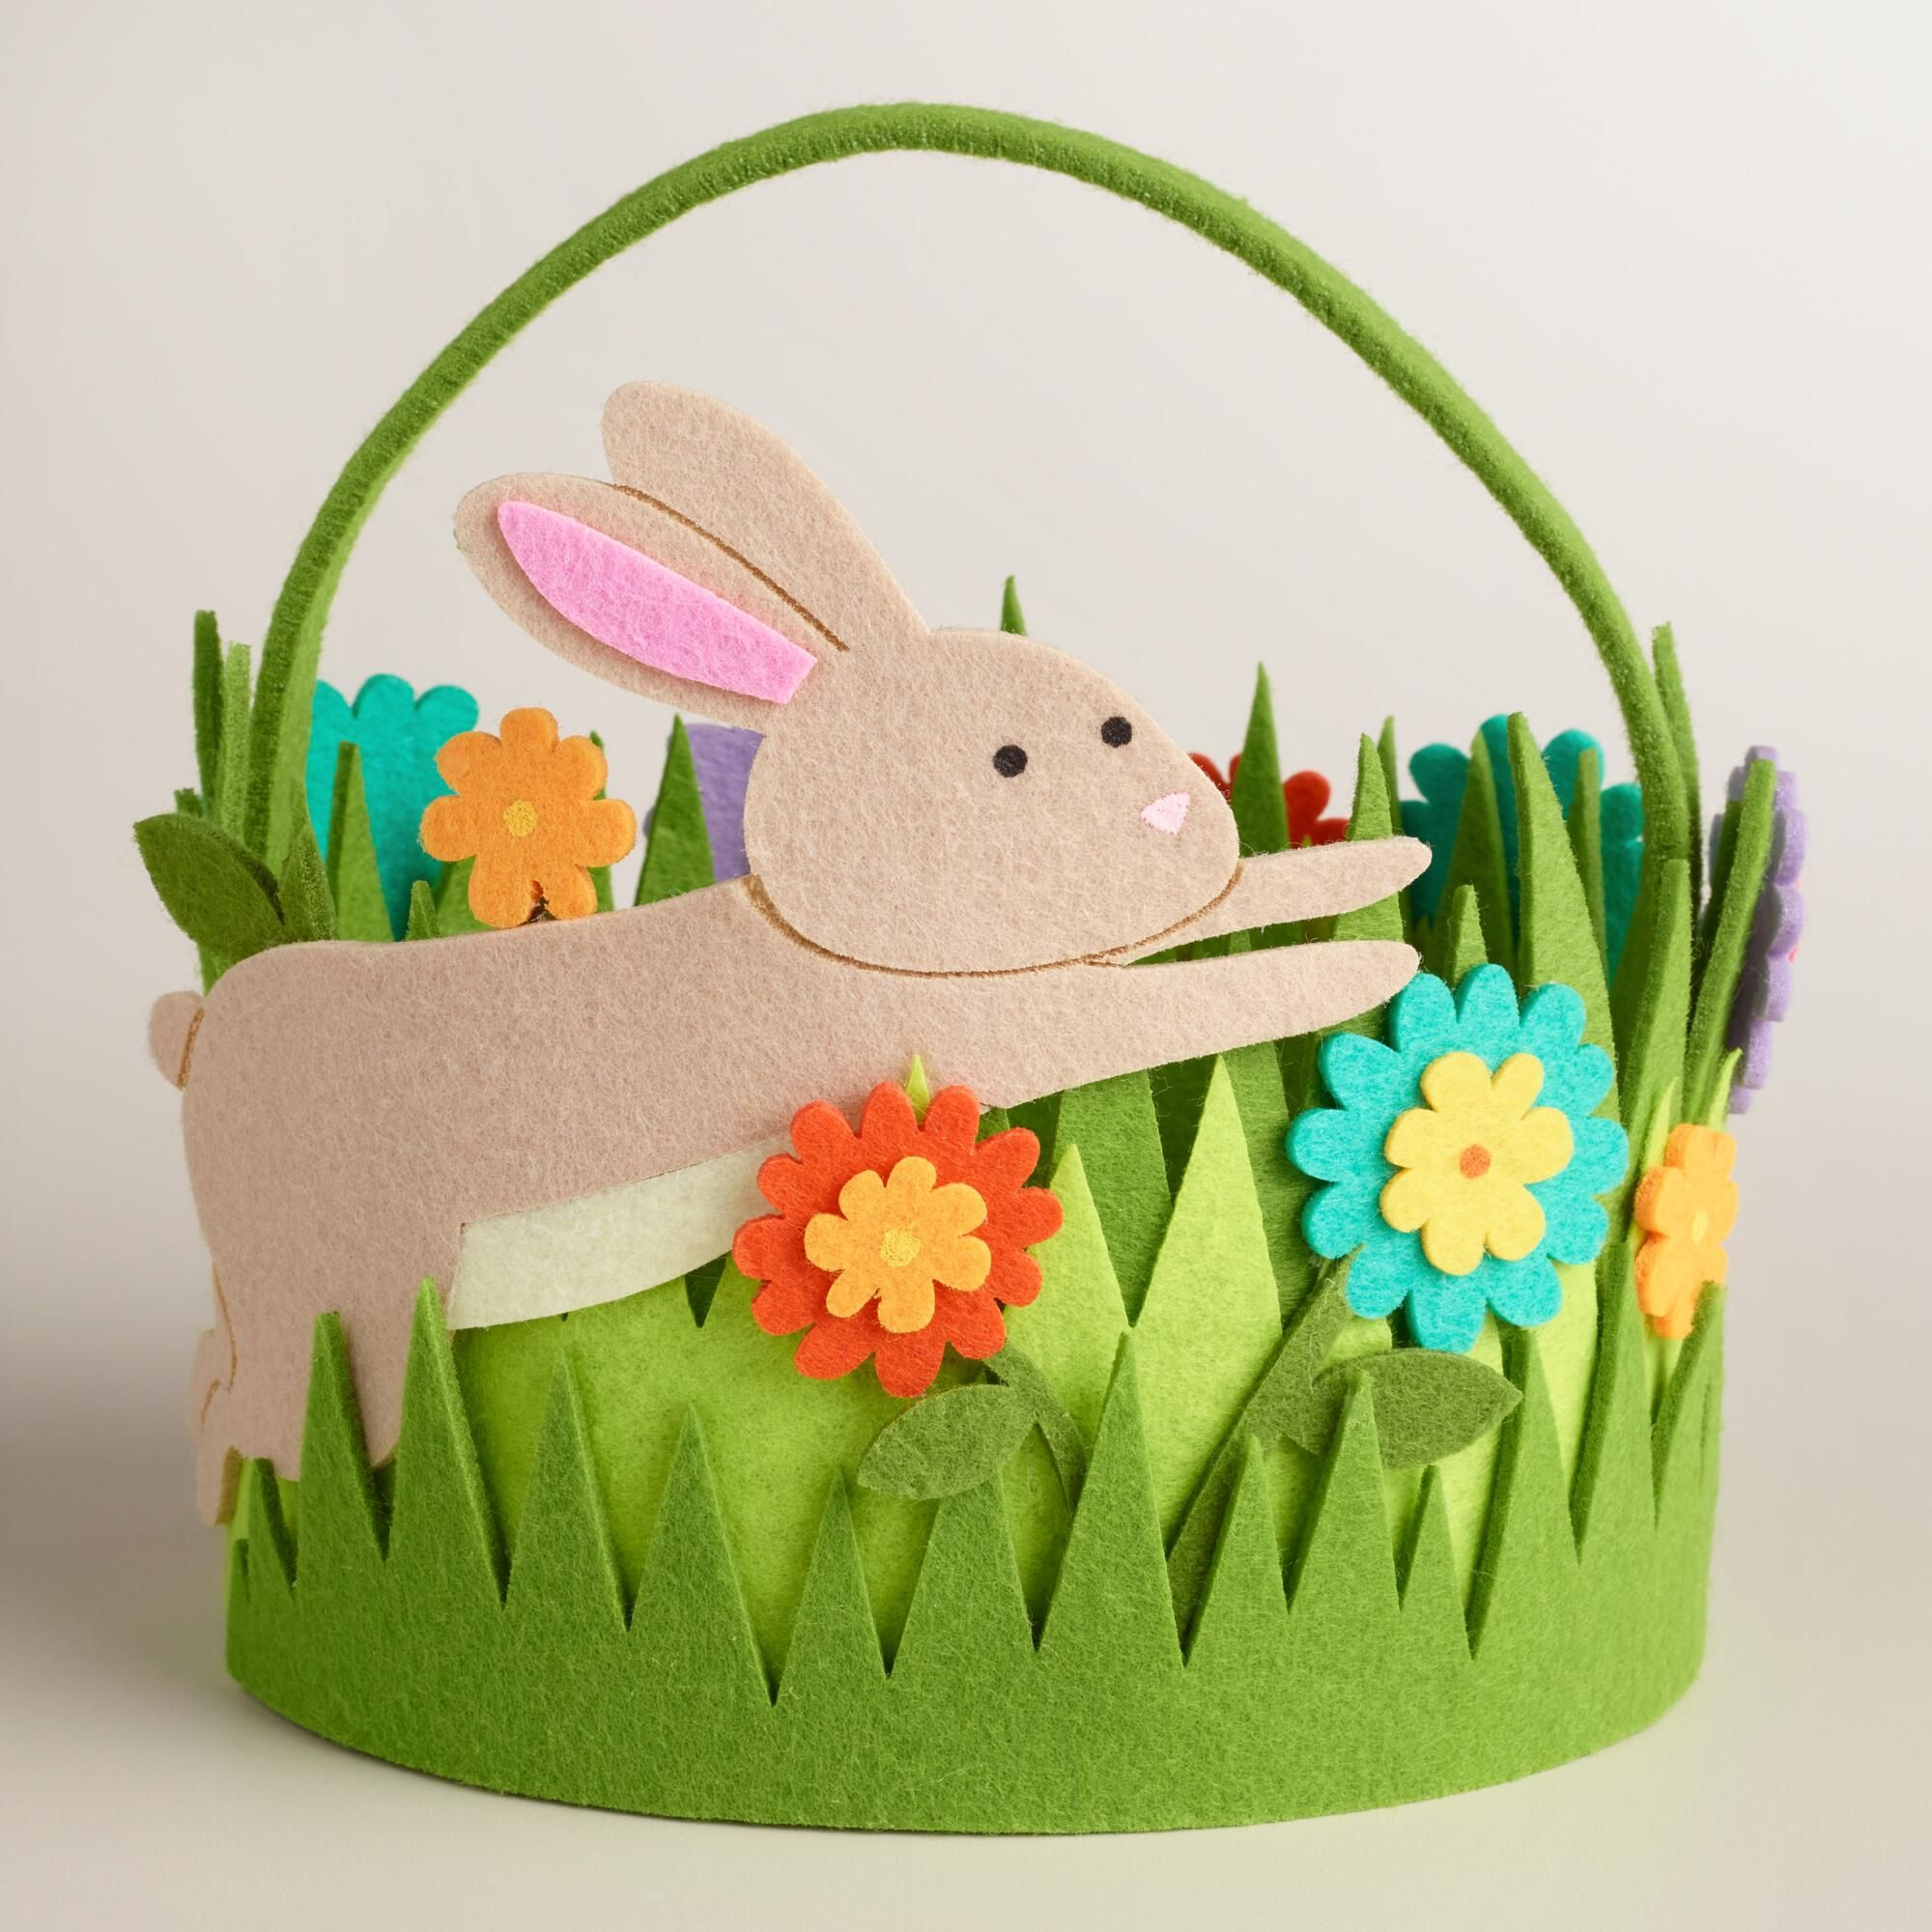 Crafted of felt in bright spring colors our exclusive oval easter crafted of felt in bright spring colors our exclusive oval easter basket features an adorable bunny and garden filled with beautiful flowers negle Gallery